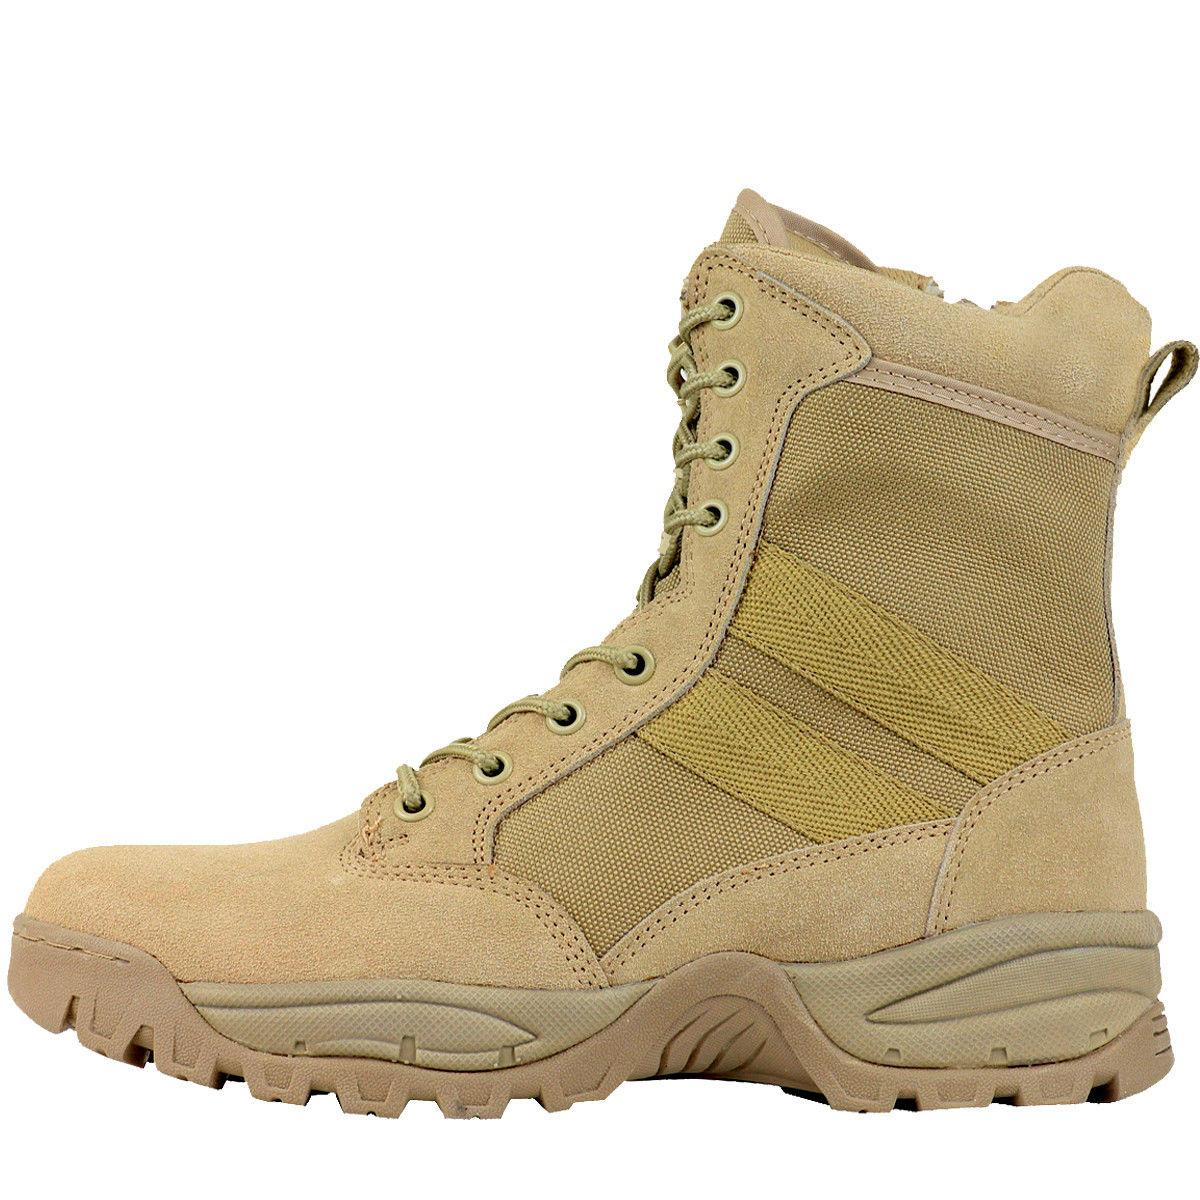 FINAL SALE Men's 8'' Desert Military Tactical Work